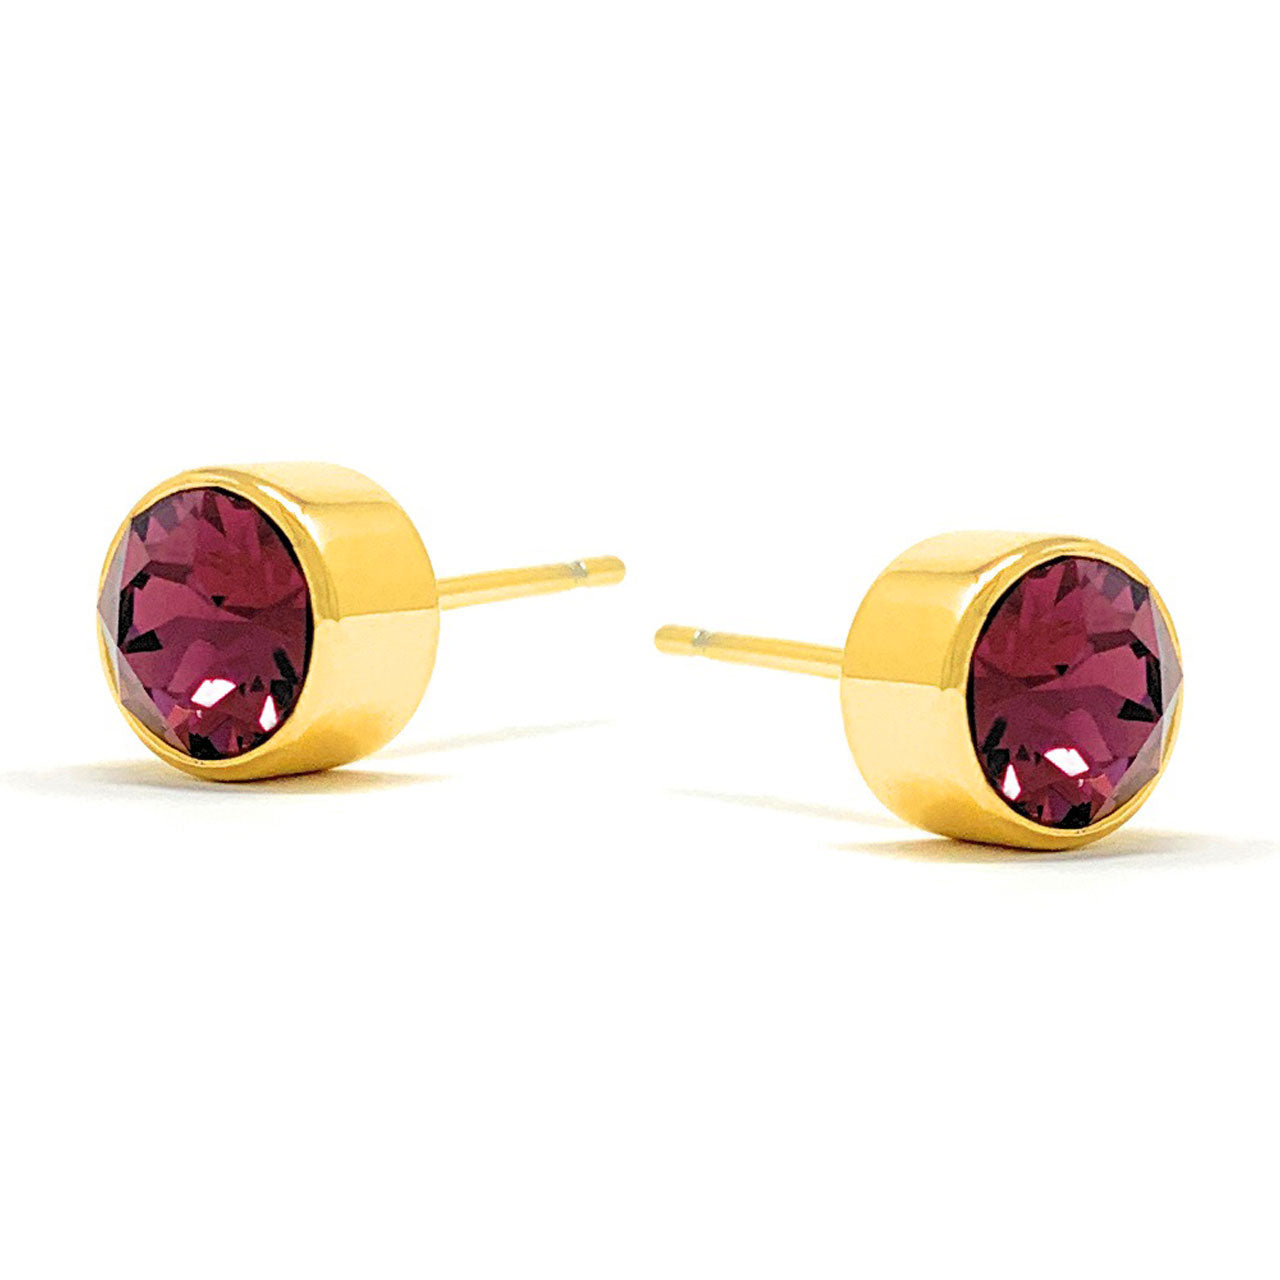 Harley Small Stud Earrings with Purple Amethyst Round Crystals from Swarovski Gold Plated - Ed Heart